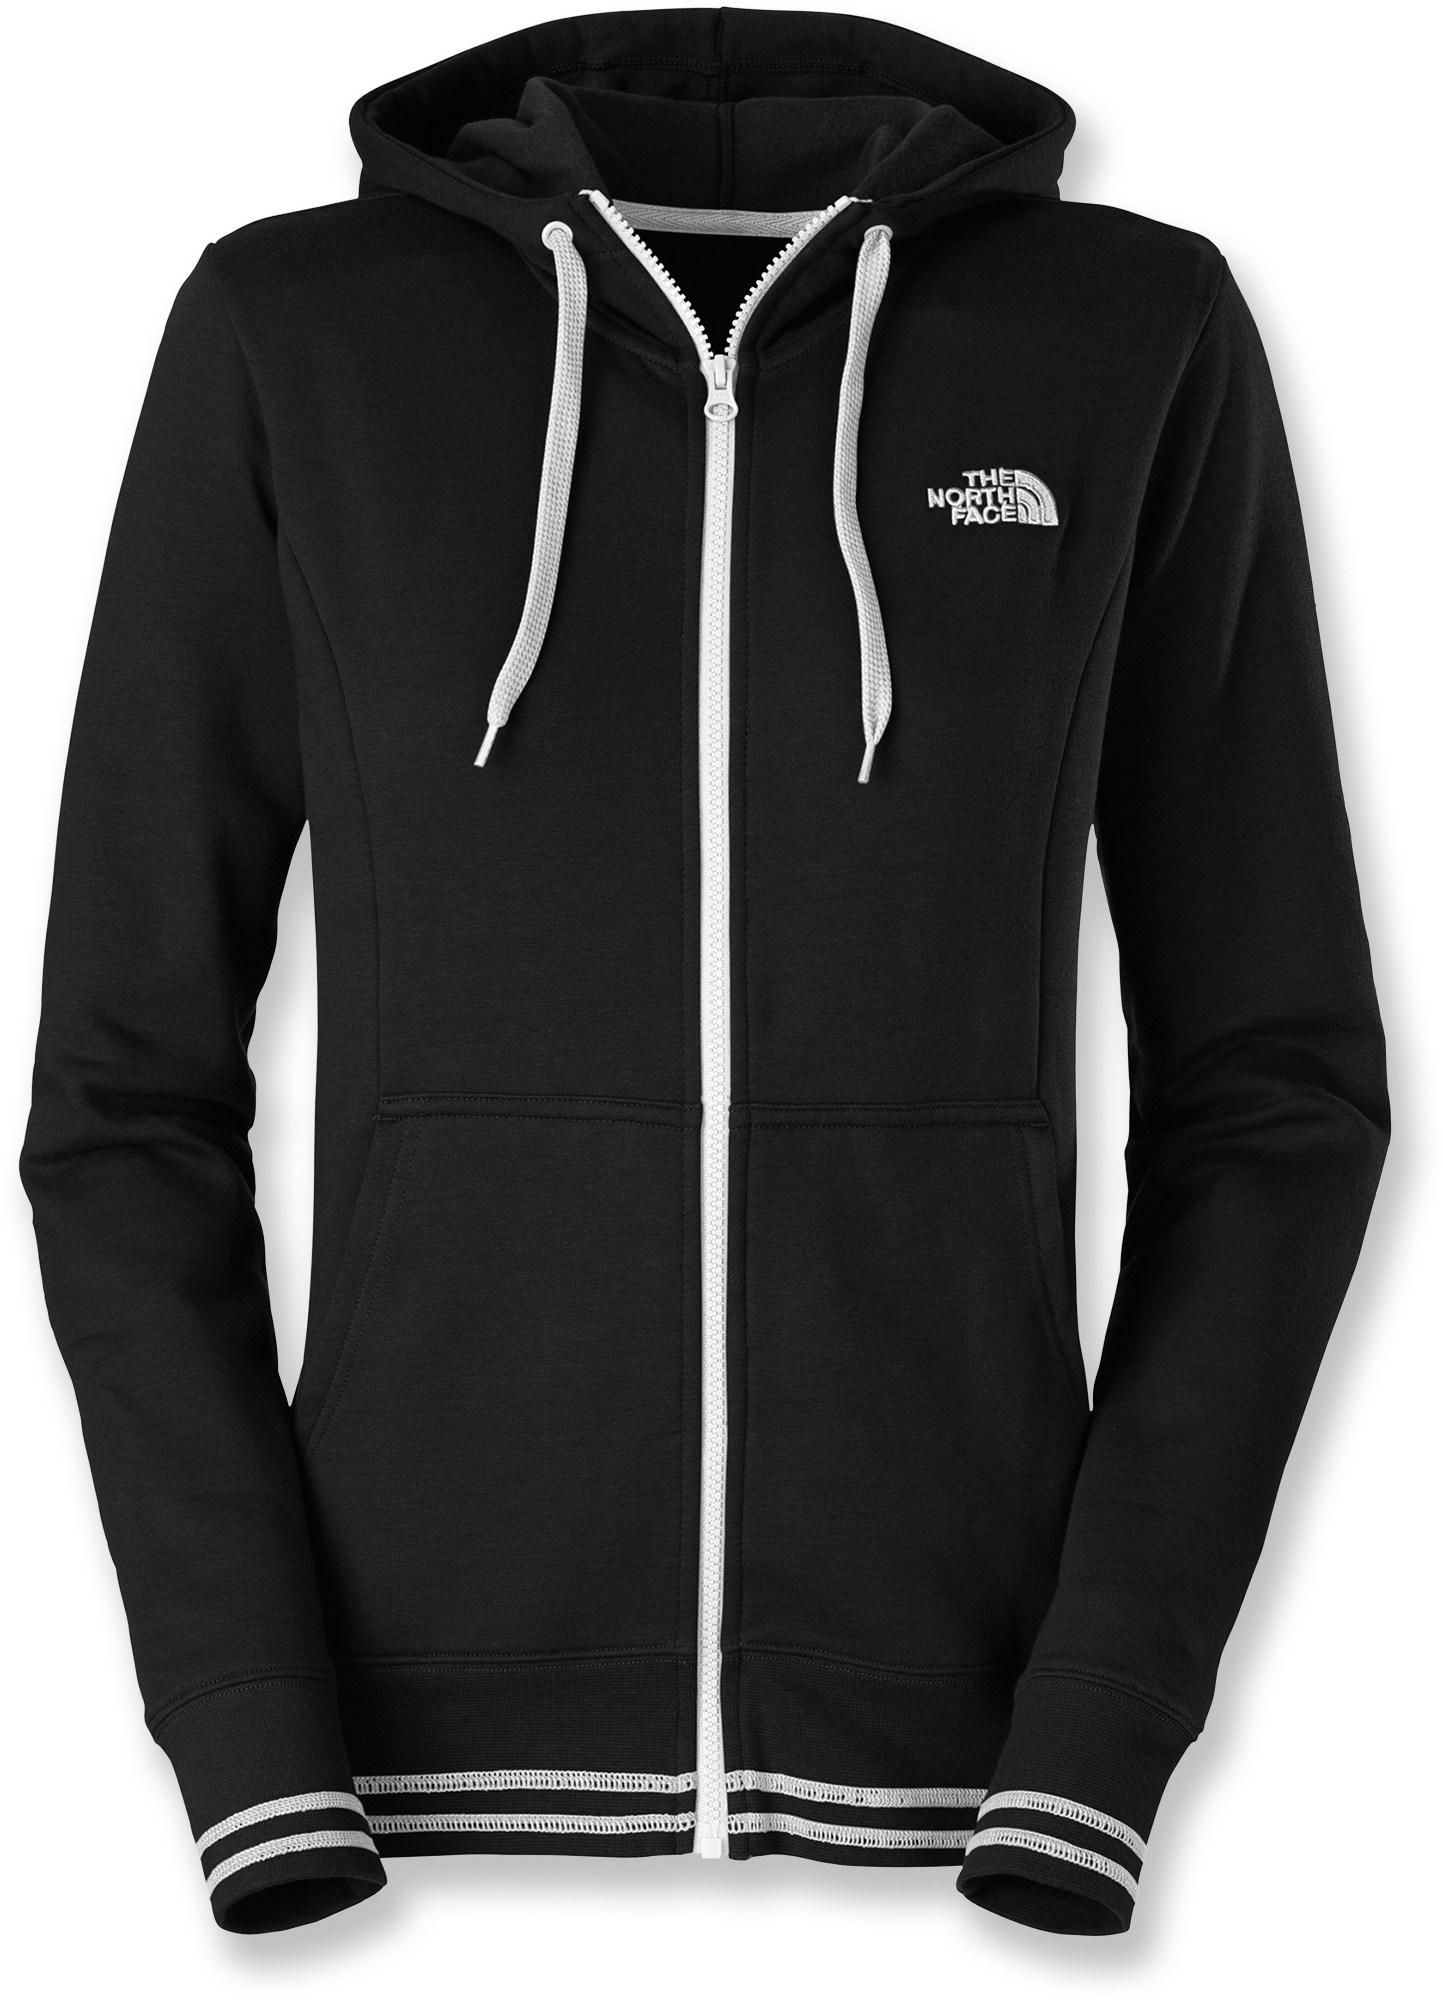 1f84d7e05 Women's The North Face Logo Full-Zip Hoodie should be your go-to ...